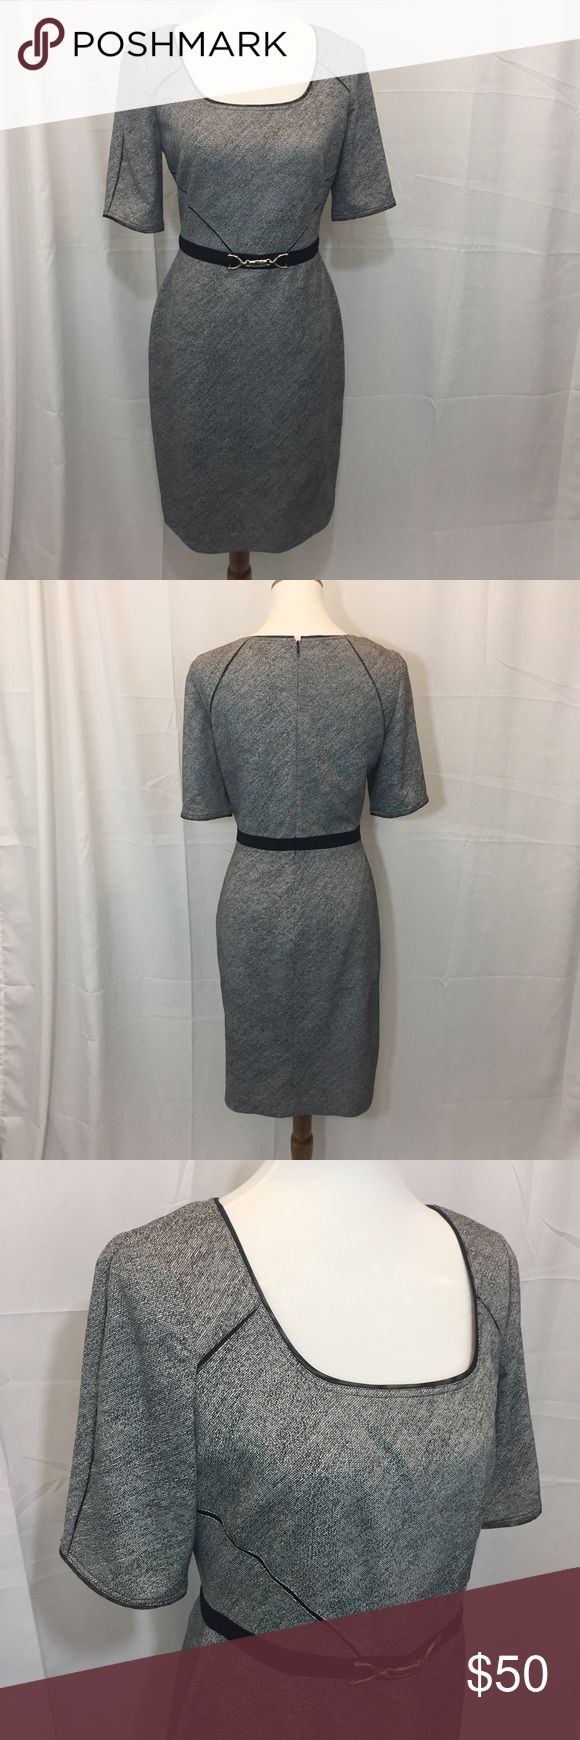 Kay Unger, grey and black dress Perfect condition, worn twice, lined, knee length, great work dress. Kay Unger Dresses